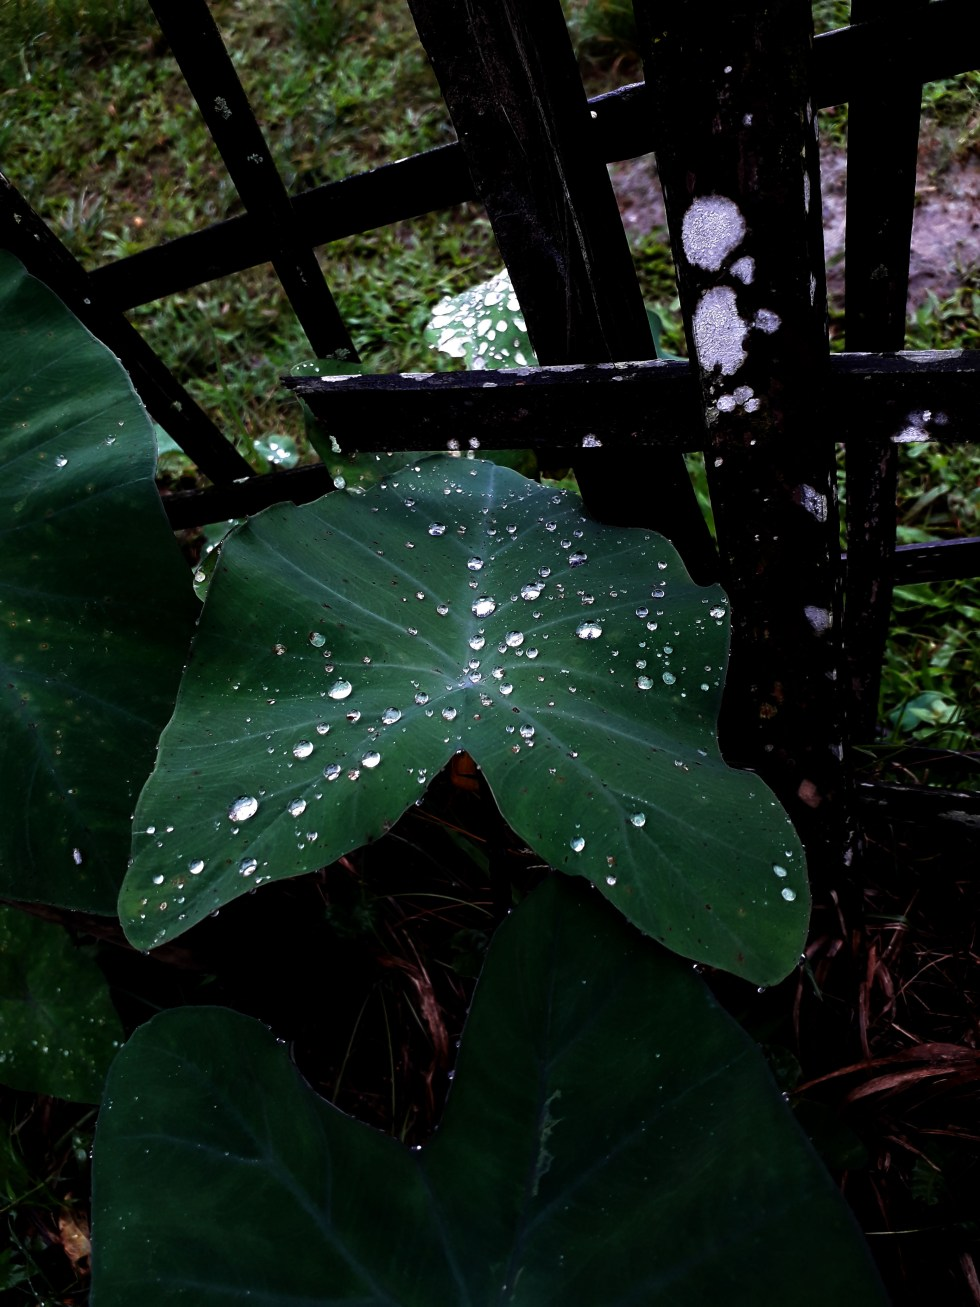 drops of rainwater on a leaf